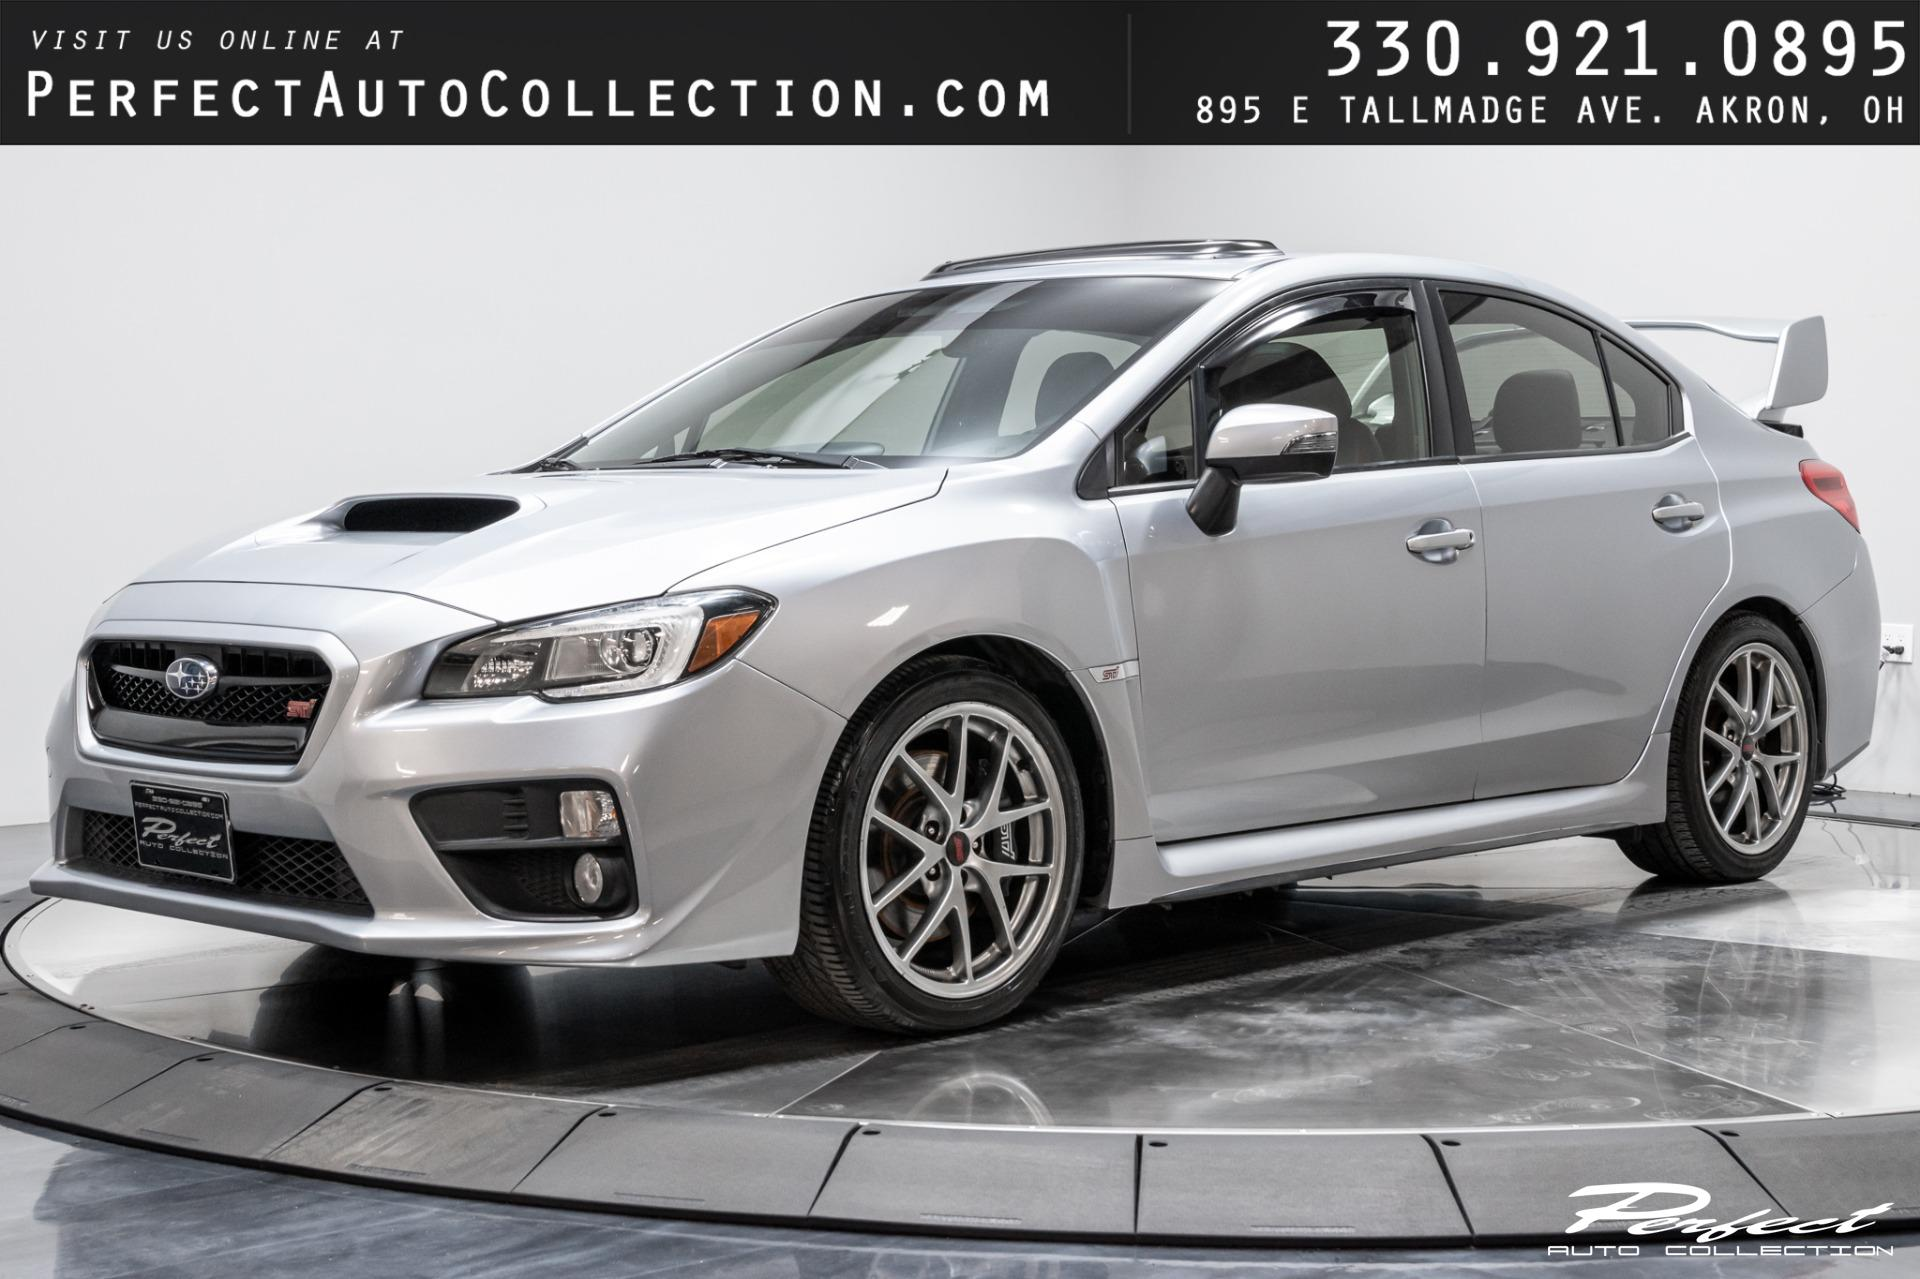 Used 2015 Subaru WRX STI Limited for sale Sold at Perfect Auto Collection in Akron OH 44310 1